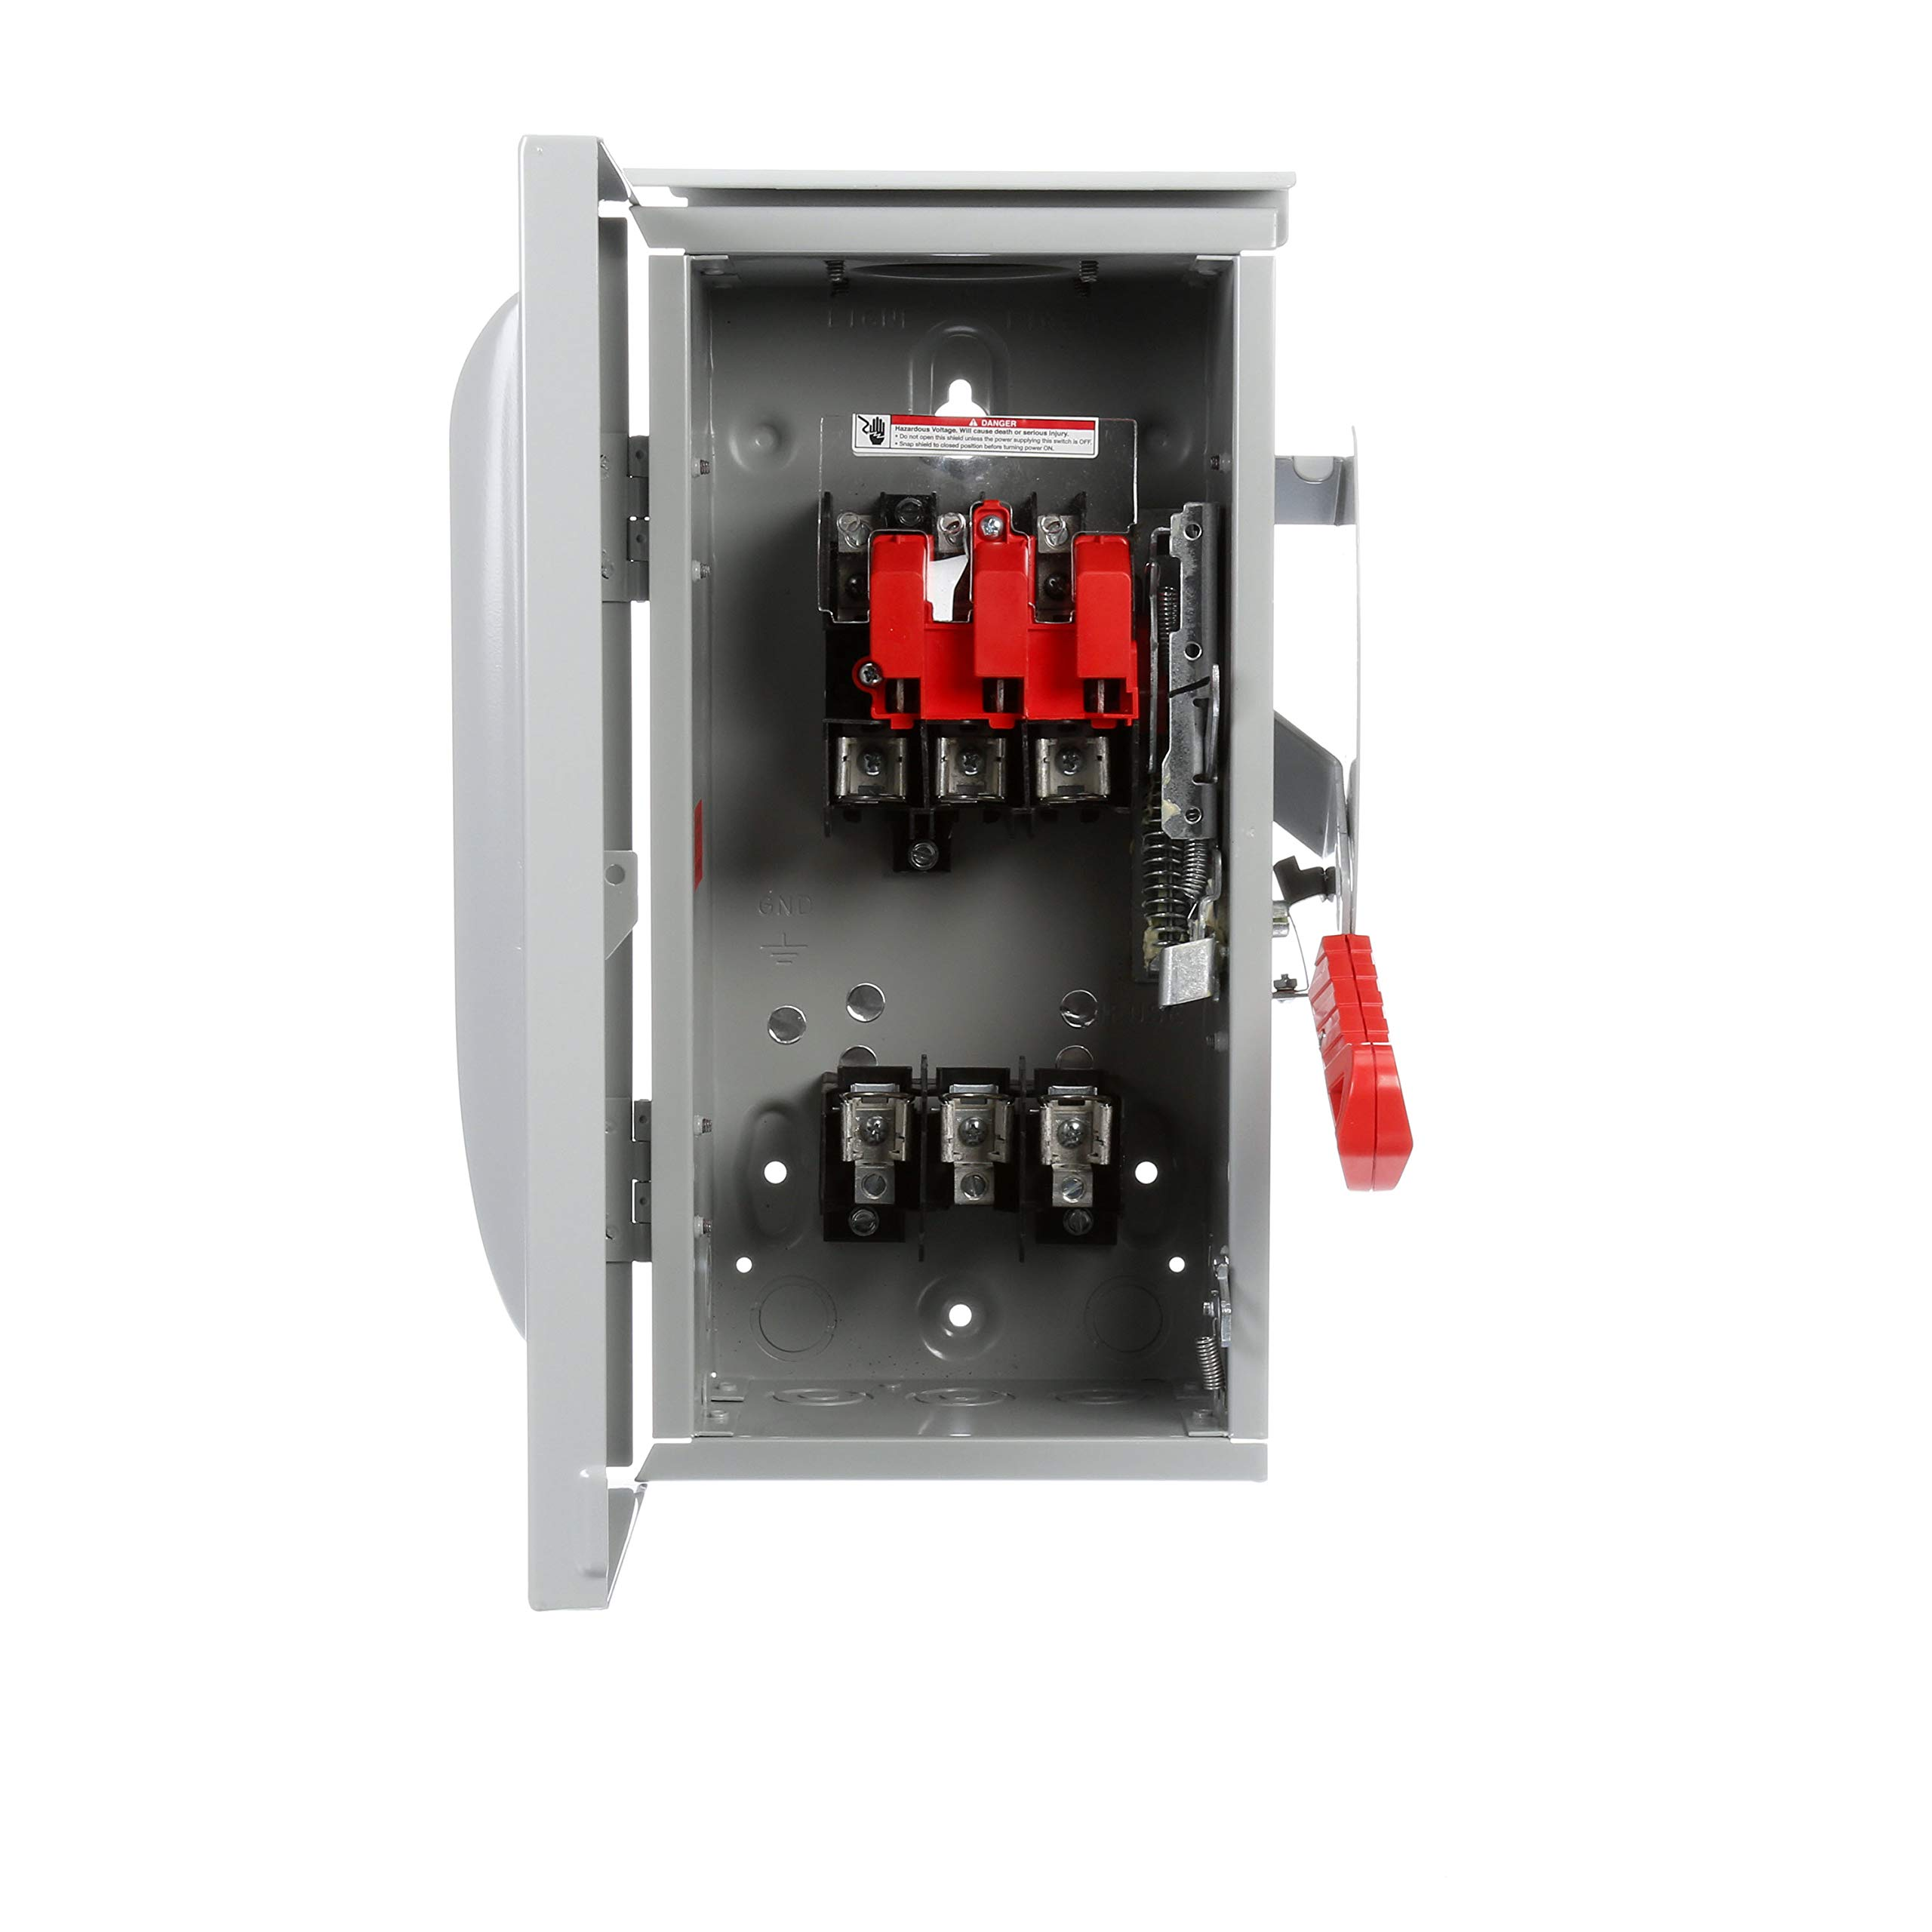 Siemens HF361R 30-Amp 3 Pole 600-volt 3 Wire Fused Heavy Duty Safety Switches by SIEMENS (Image #2)